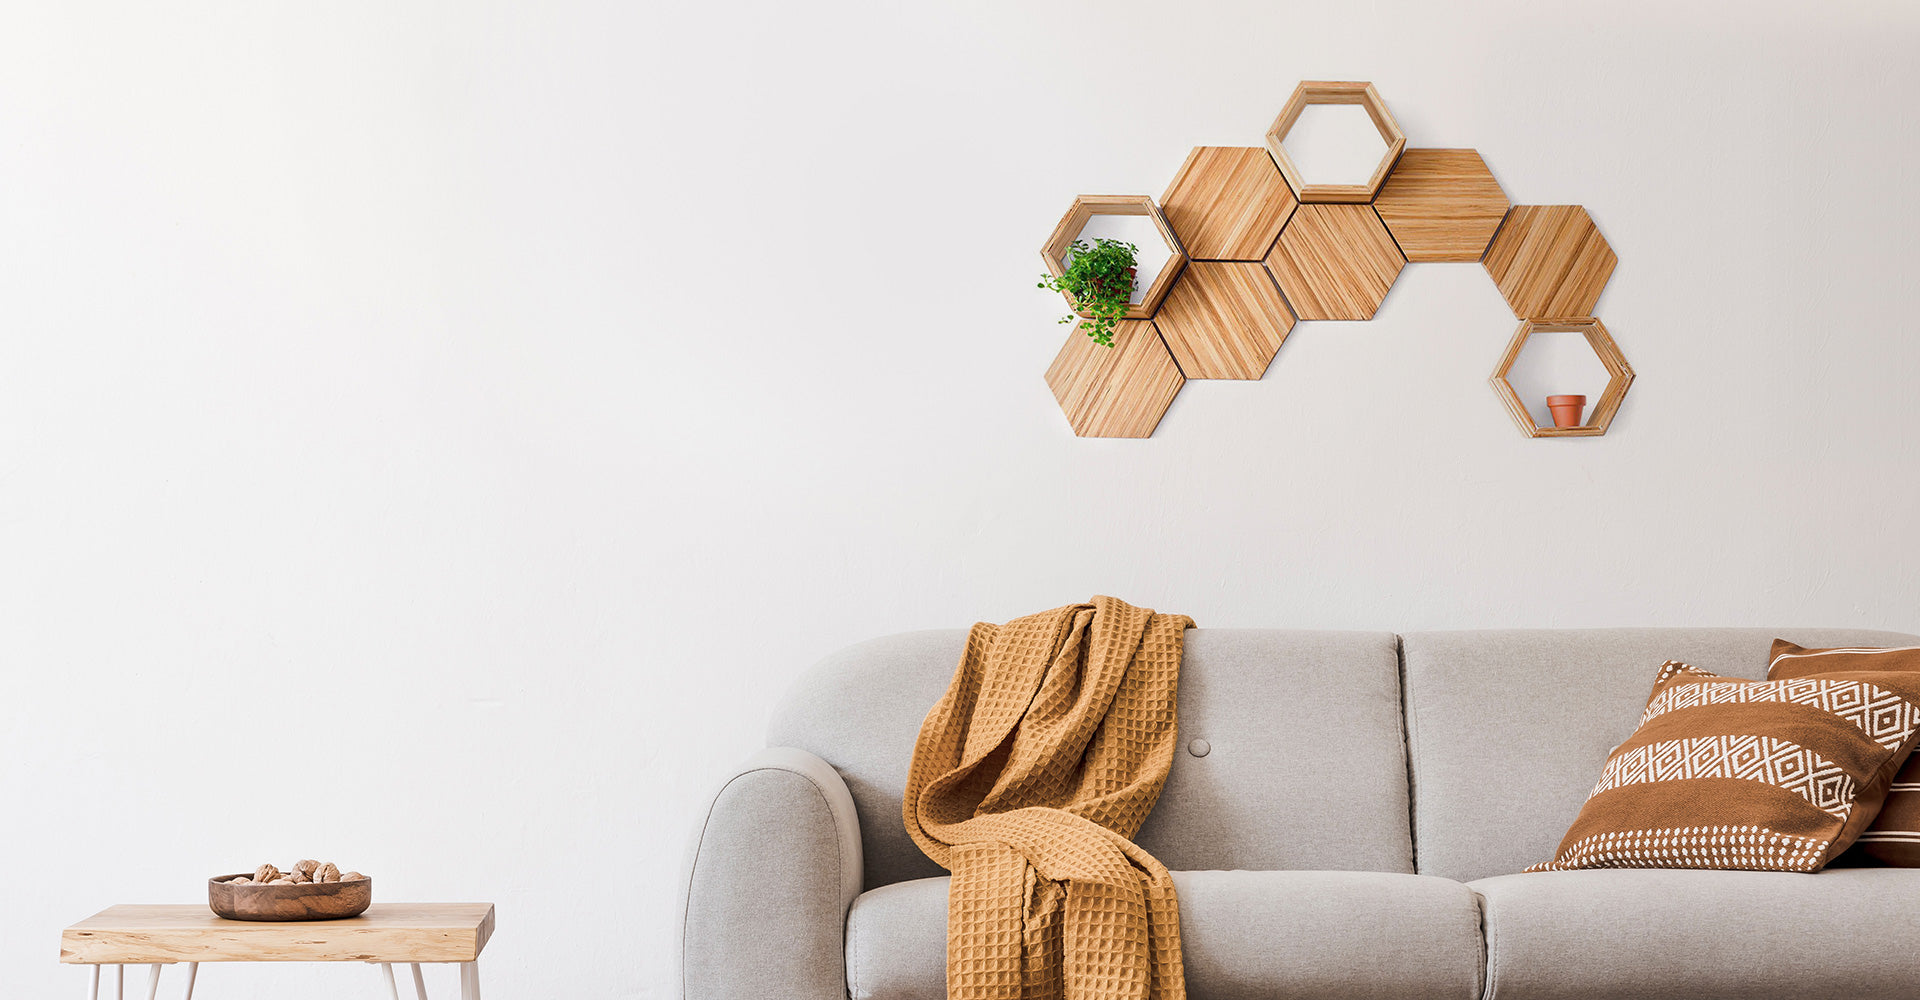 Eco-friendly wall decor sustainably made with recycled chopsticks